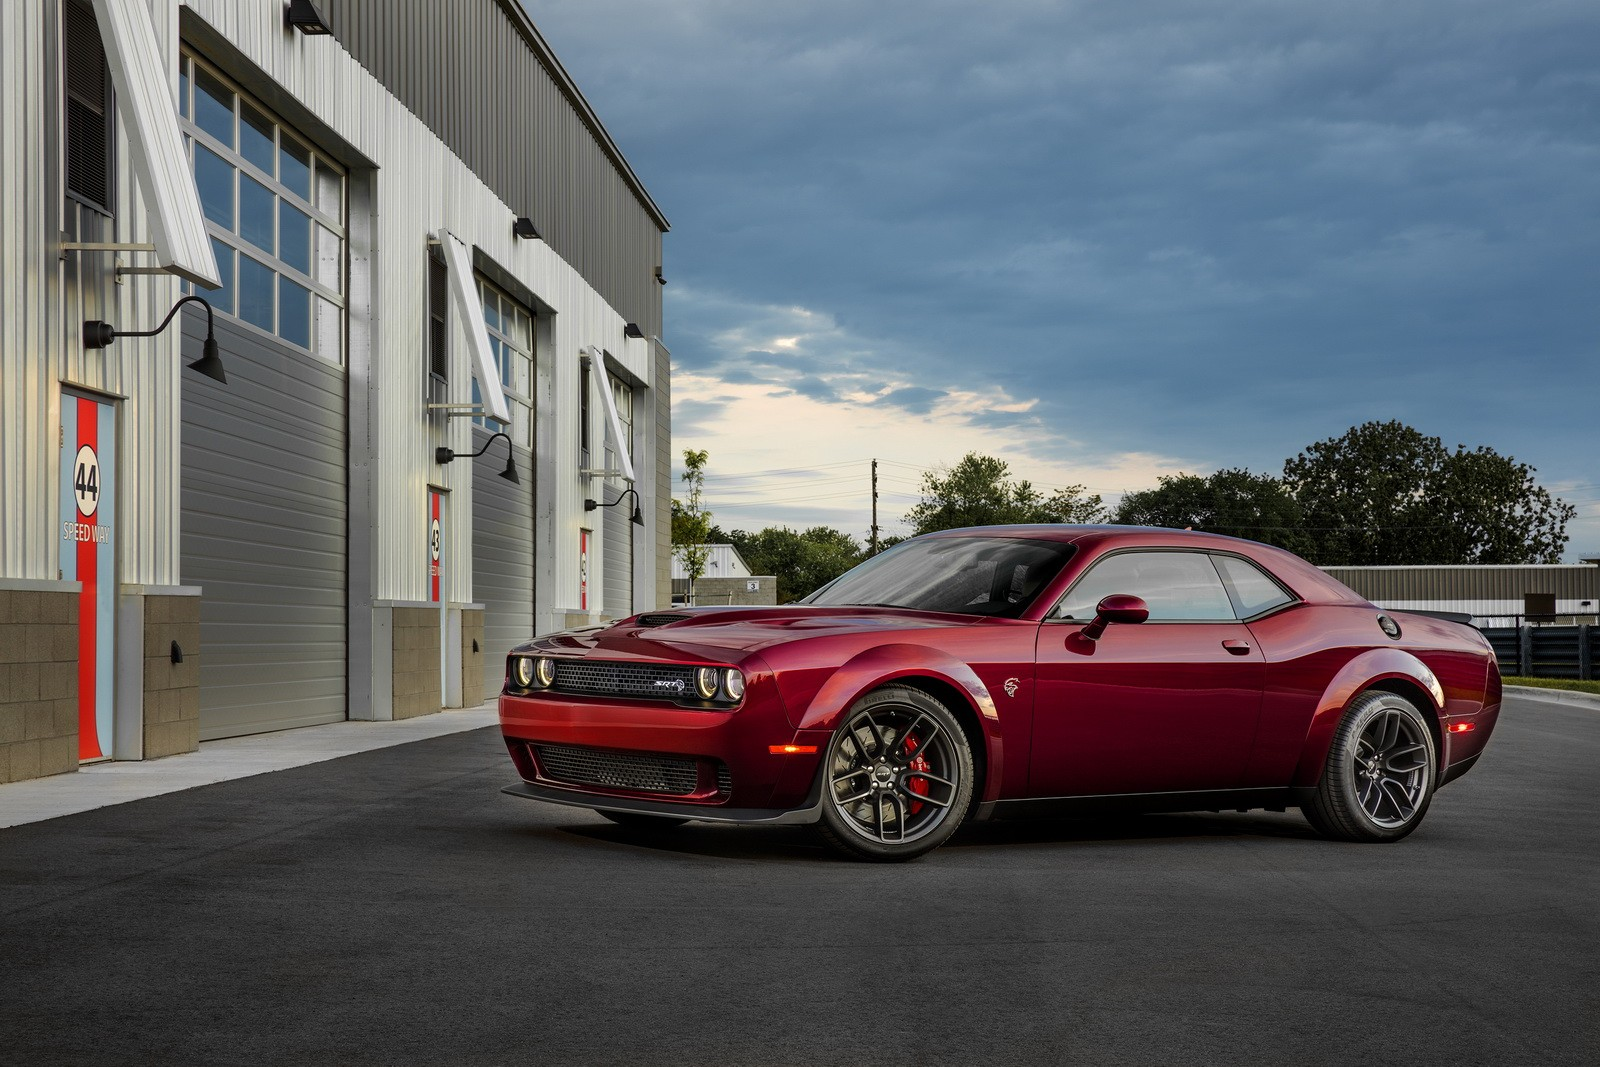 Dodge Challenger Srt Hellcat Previewed Ahead Of Summer Reveal together with I in addition Dodge Charger Hellcat Photo Shoot in addition Hqdefault as well Dsc. on dodge challenger srt hellcat